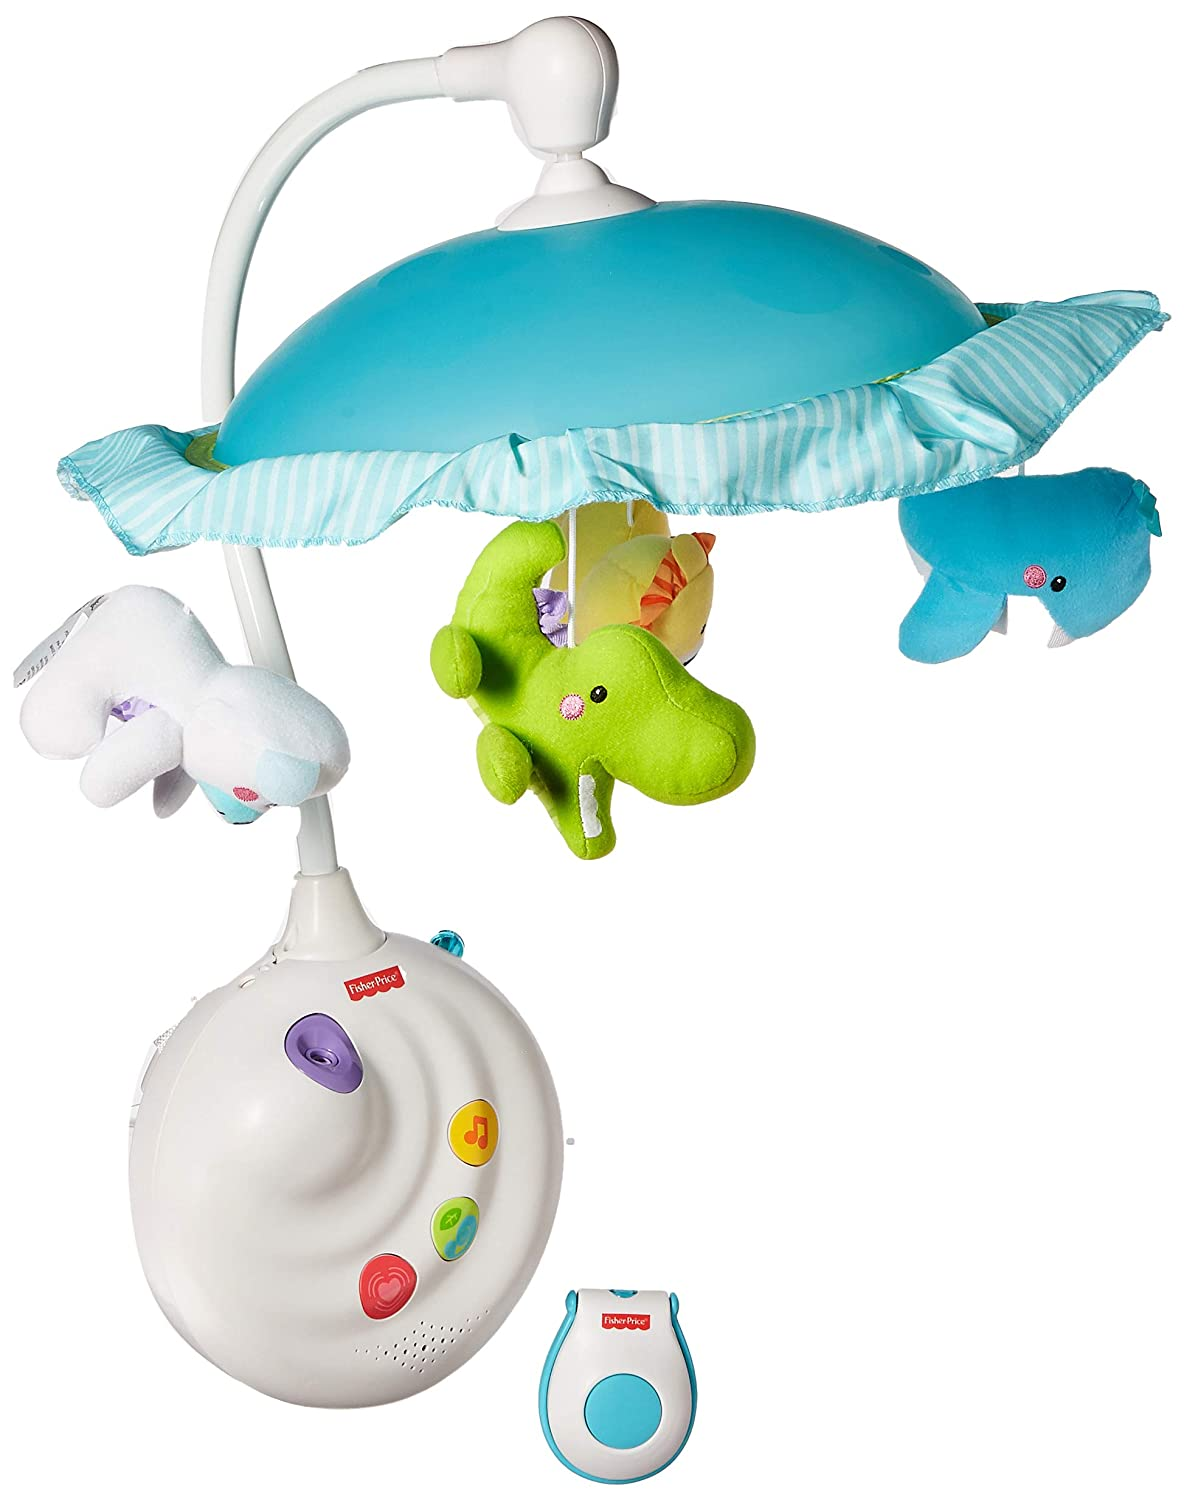 9c3a7ebf1e2a2 Amazon.com   Fisher Price Precious Planet 2-in-1 Projection Mobile -  Replacement Hanging Toy Animals   Baby